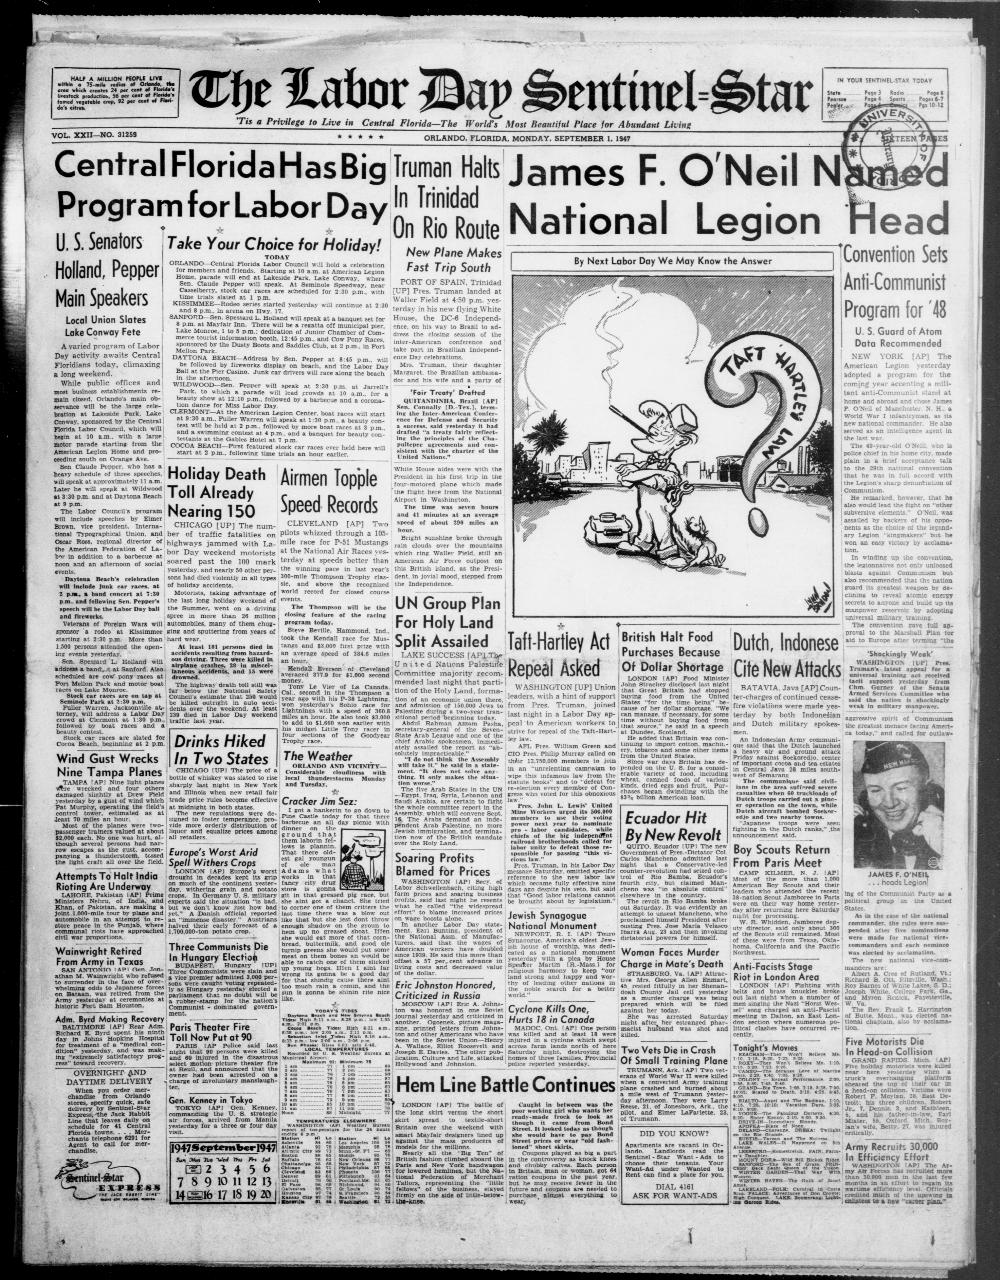 The Labor Day sentinel-star. September 1, 1947. - Page 1